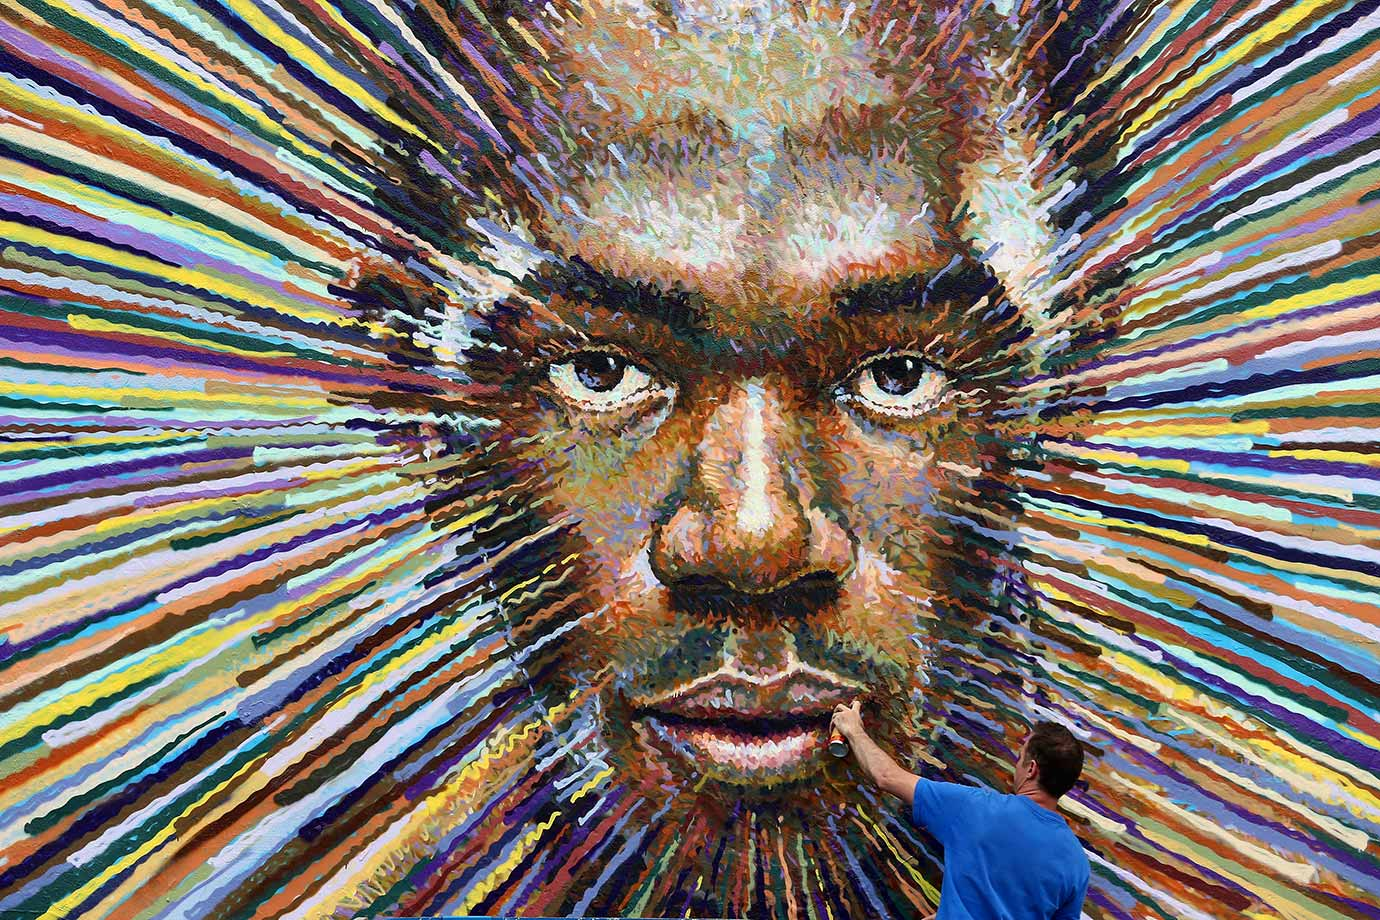 Street artist James Cochran puts the finishing touches on a piece depicting the face of Usain Bolt in London as a lead-up to the opening of the 2012 London Olympic Games.